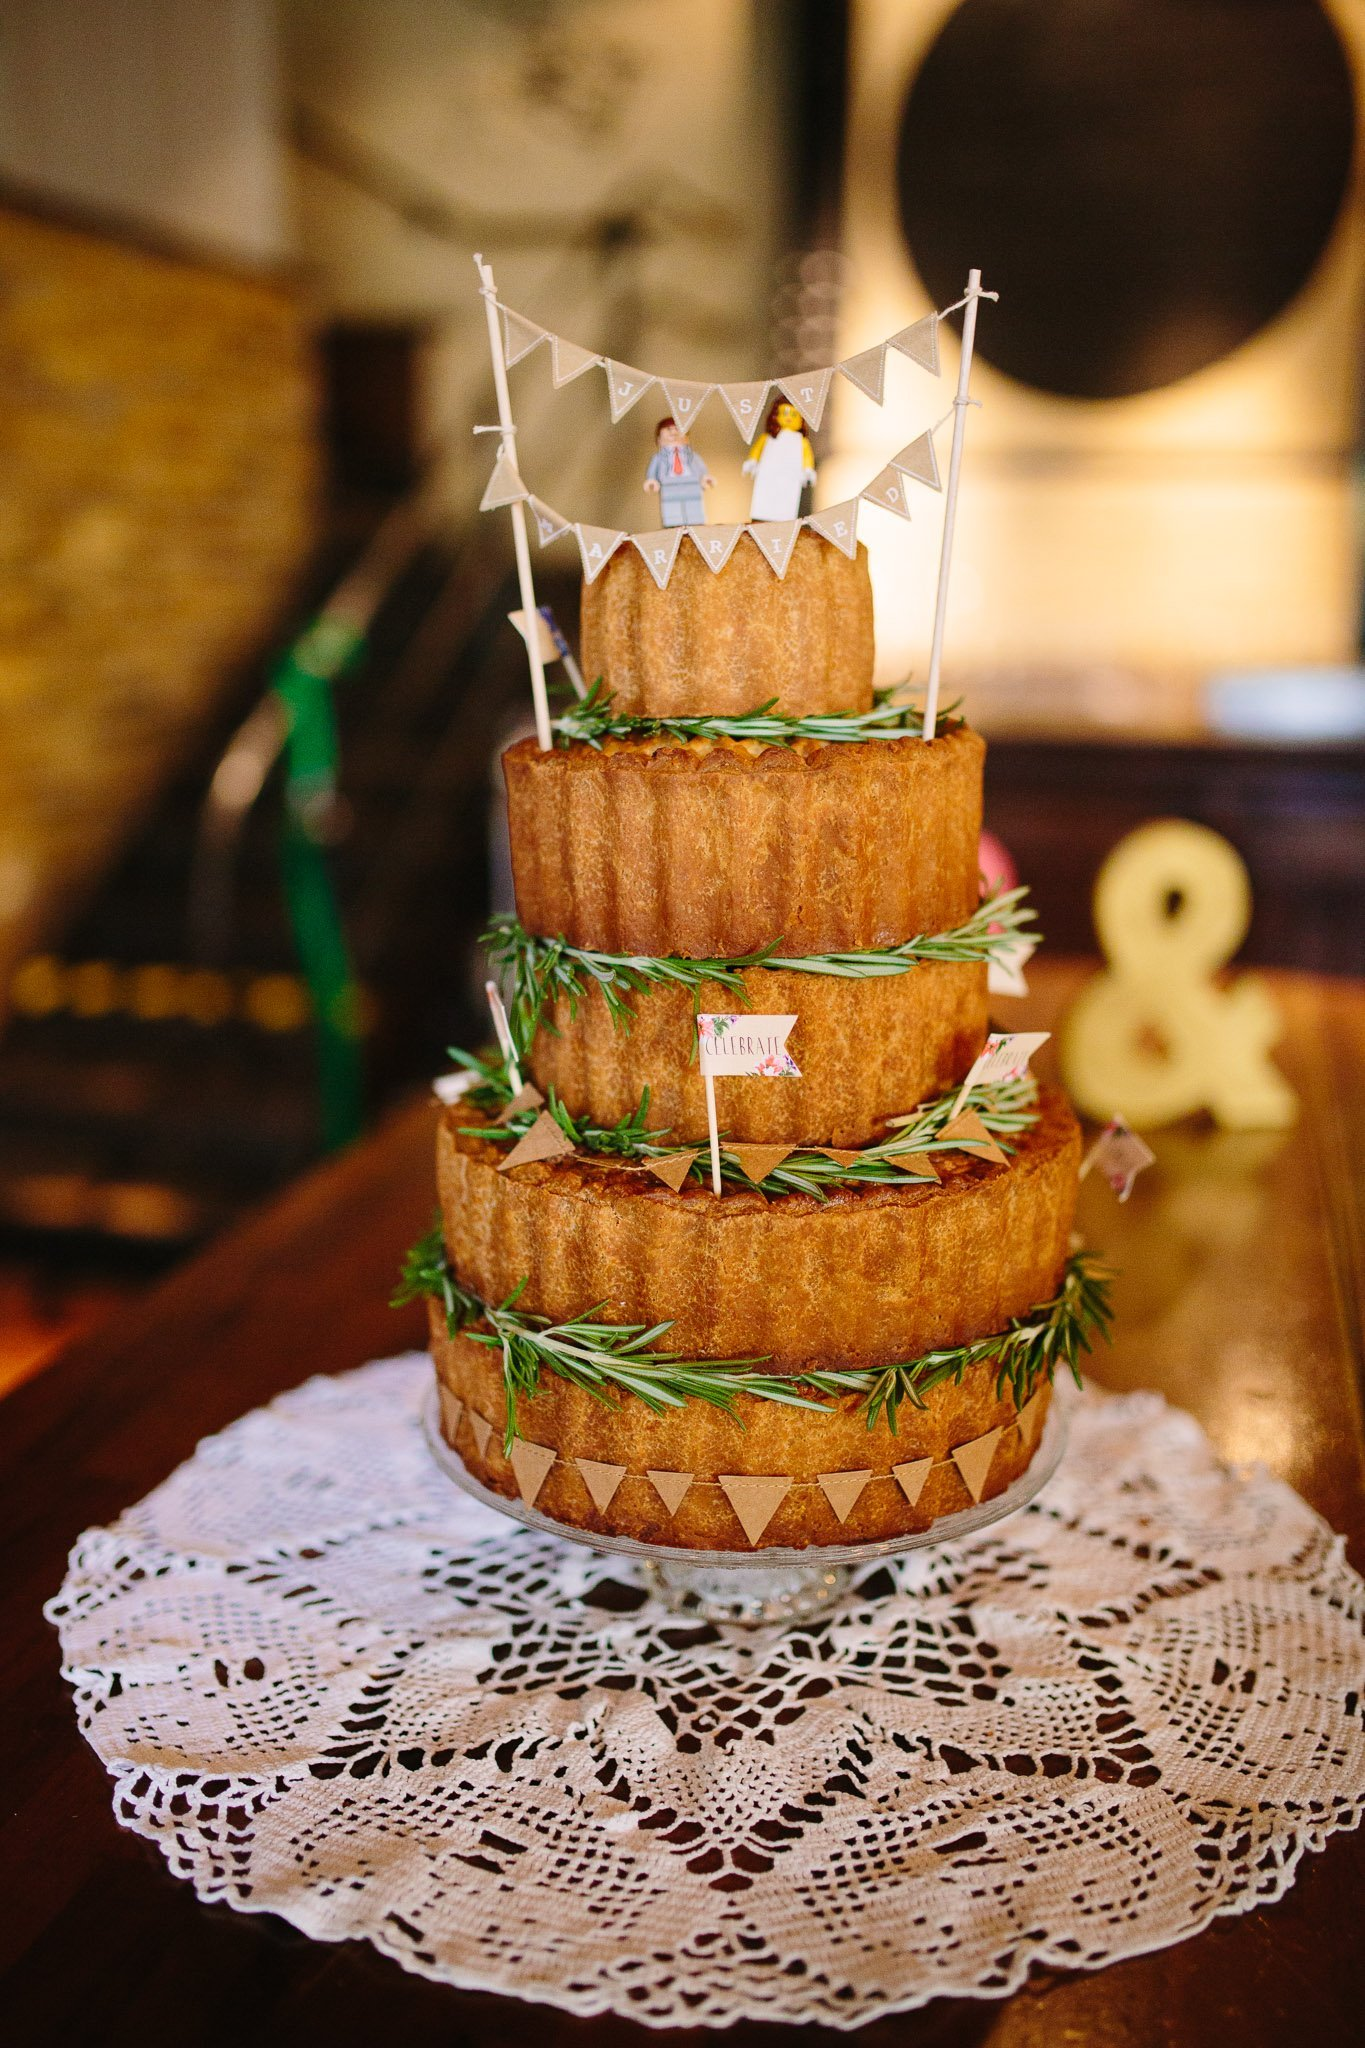 Five tier wedding sponge cake